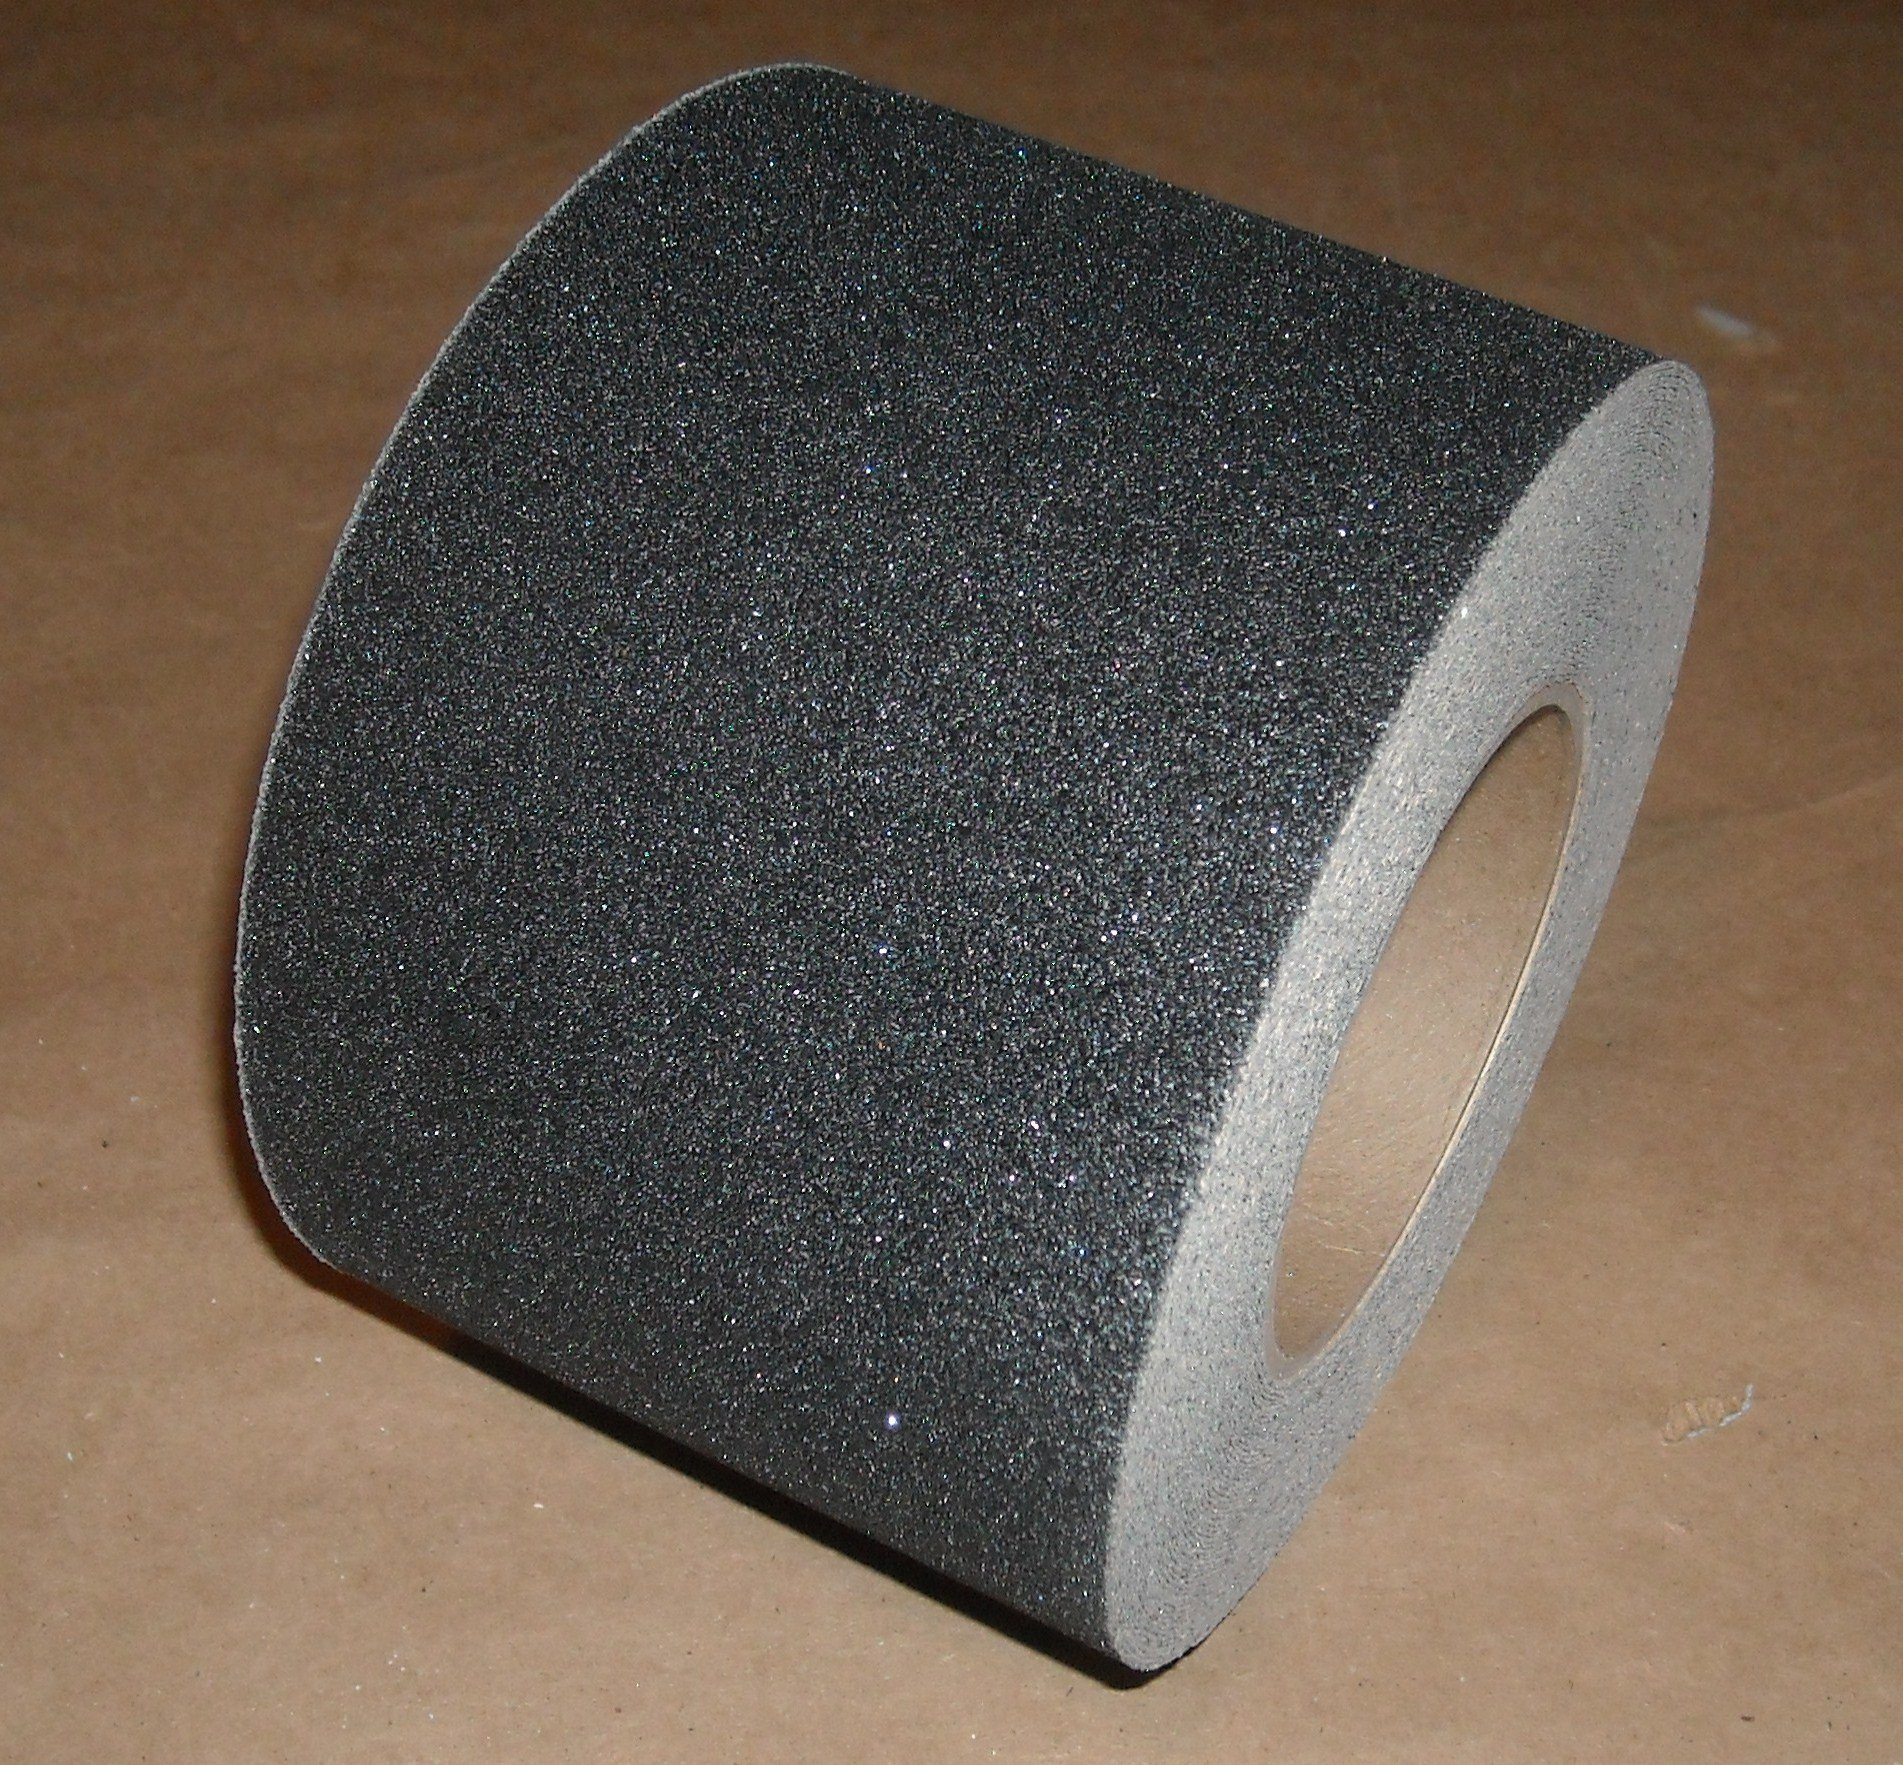 Safe Way Traction 4'' X 60' Foot Roll of Black Adhesive Anti Slip Non Skid Abrasive Safety Tape 3100-4